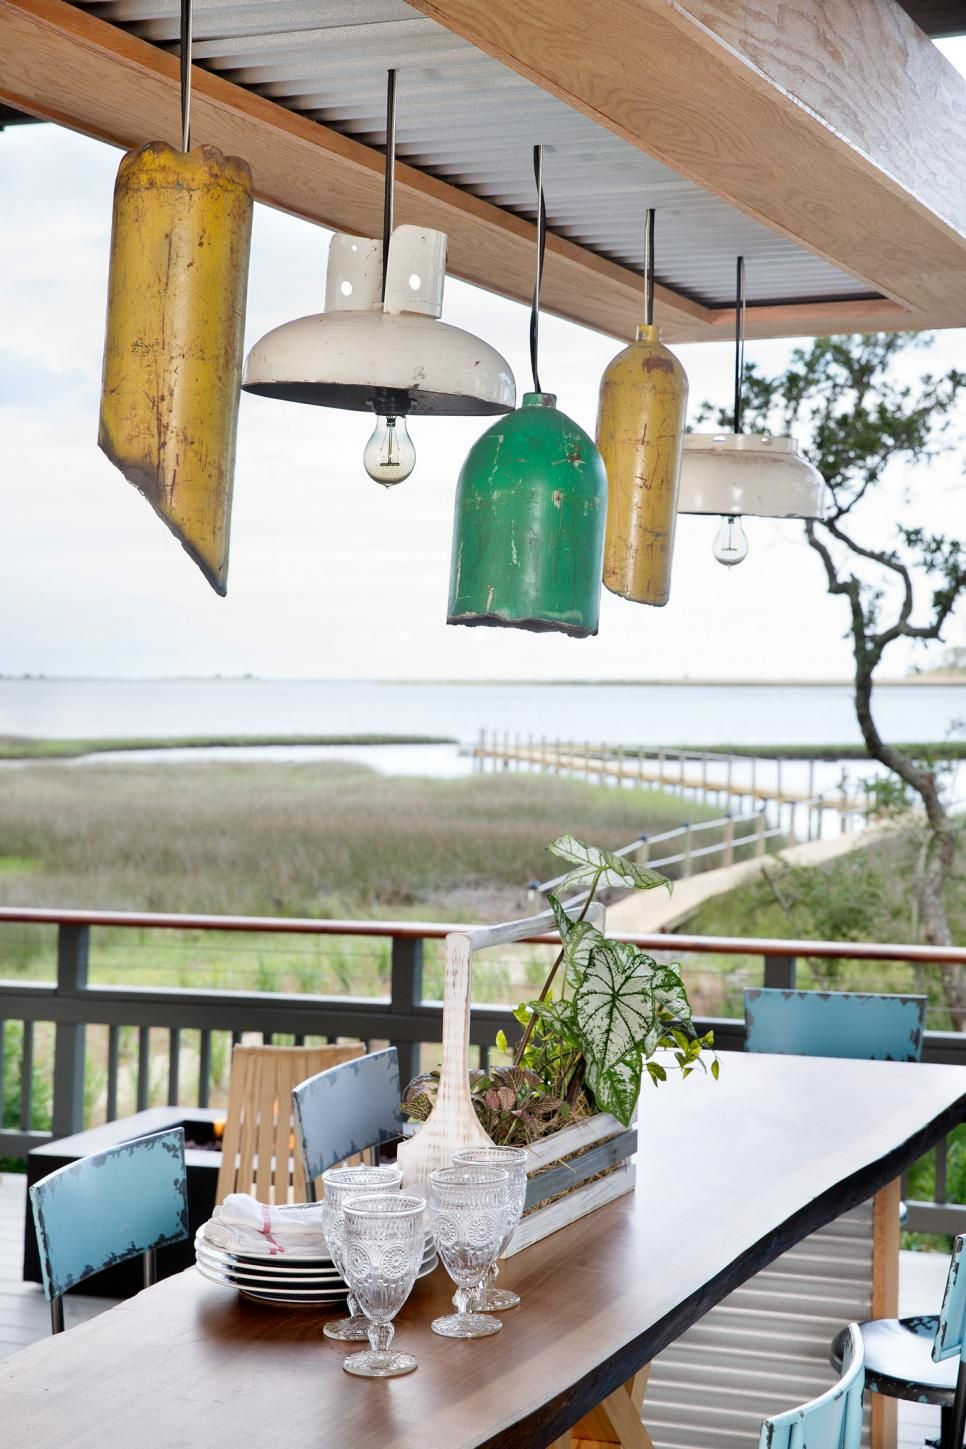 Located underneath the home on stilts, the lower deck offers an inviting space for entertaining and lounging.